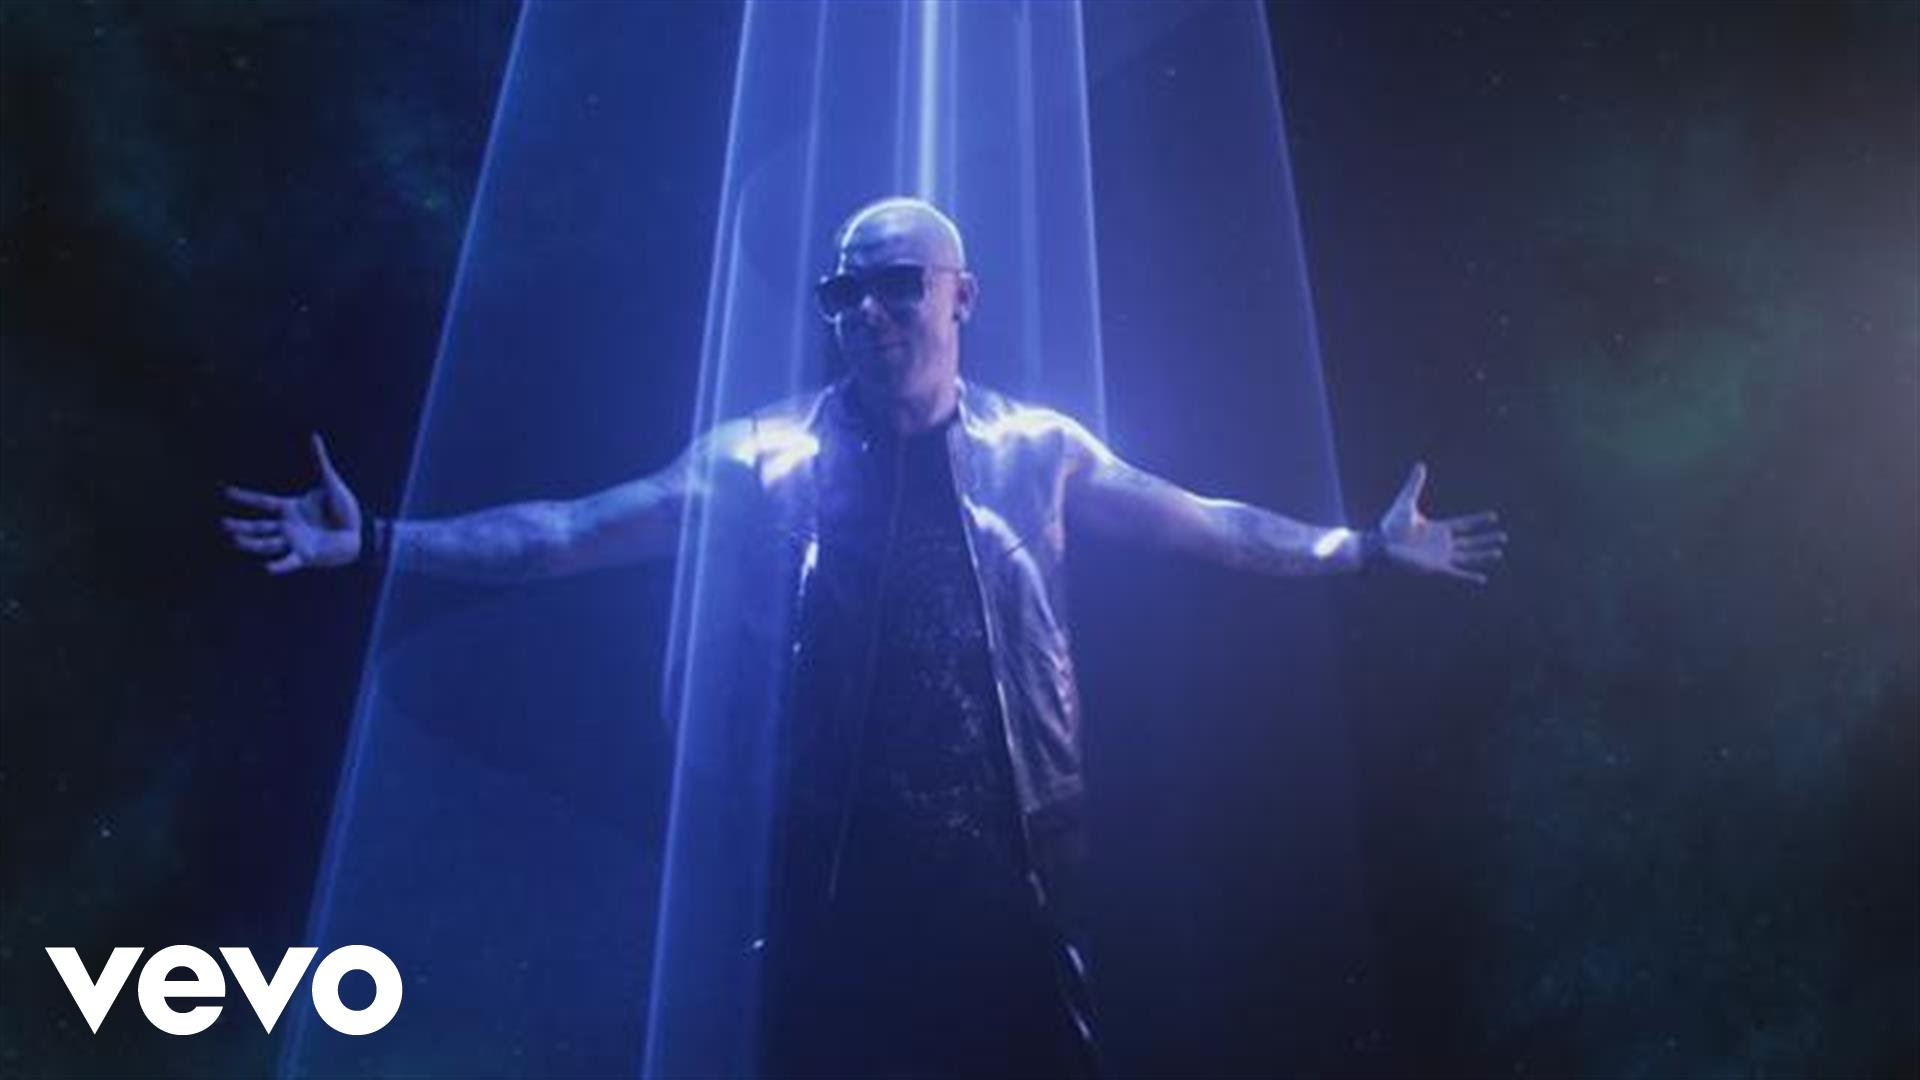 Wisin ft Pitbull – Control (Official Video)